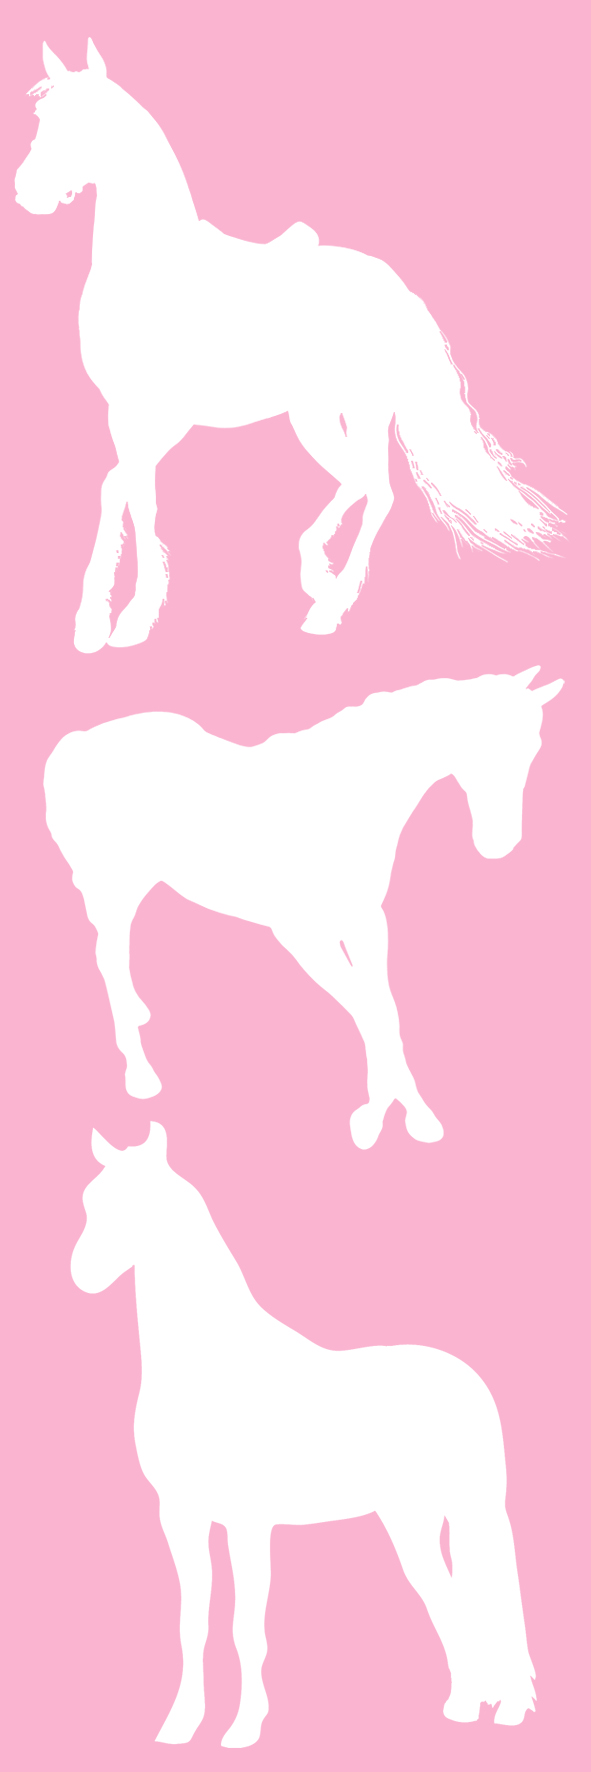 horse silhouette bookmark pink